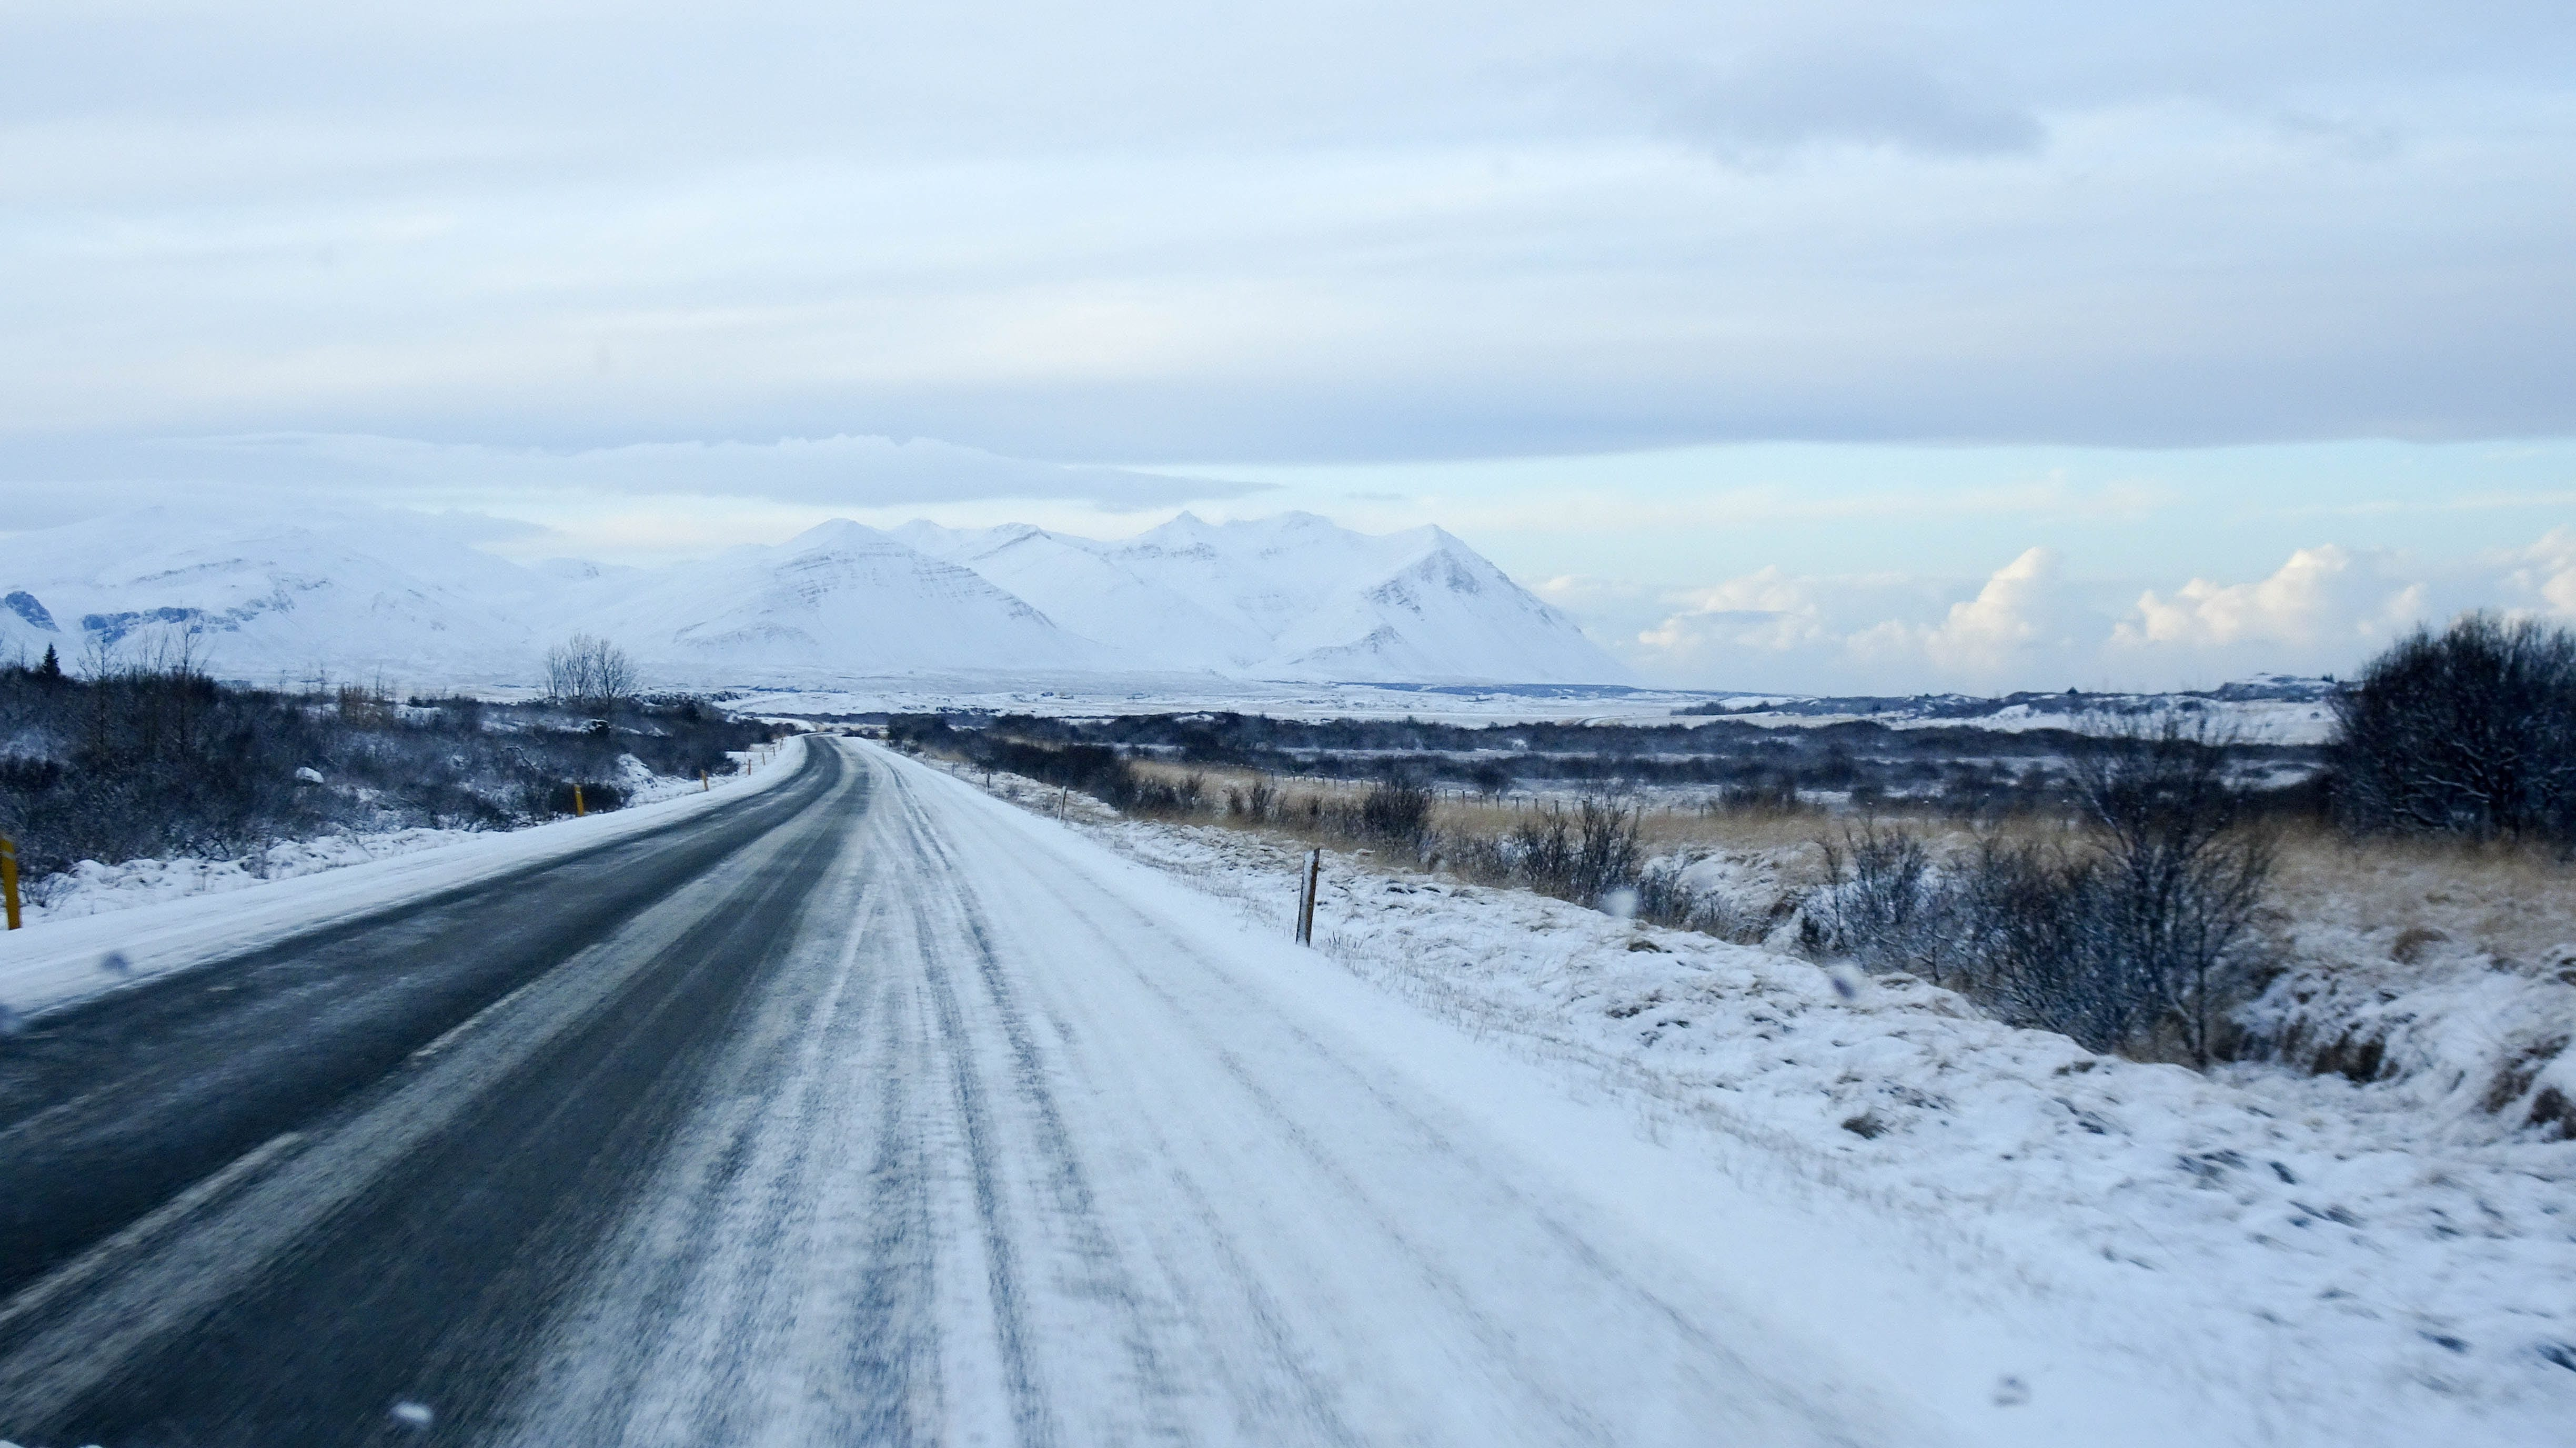 Snow-covered road flanked by fields with mountains in the distance; image by Patrick Wittke, via Unsplash.com.